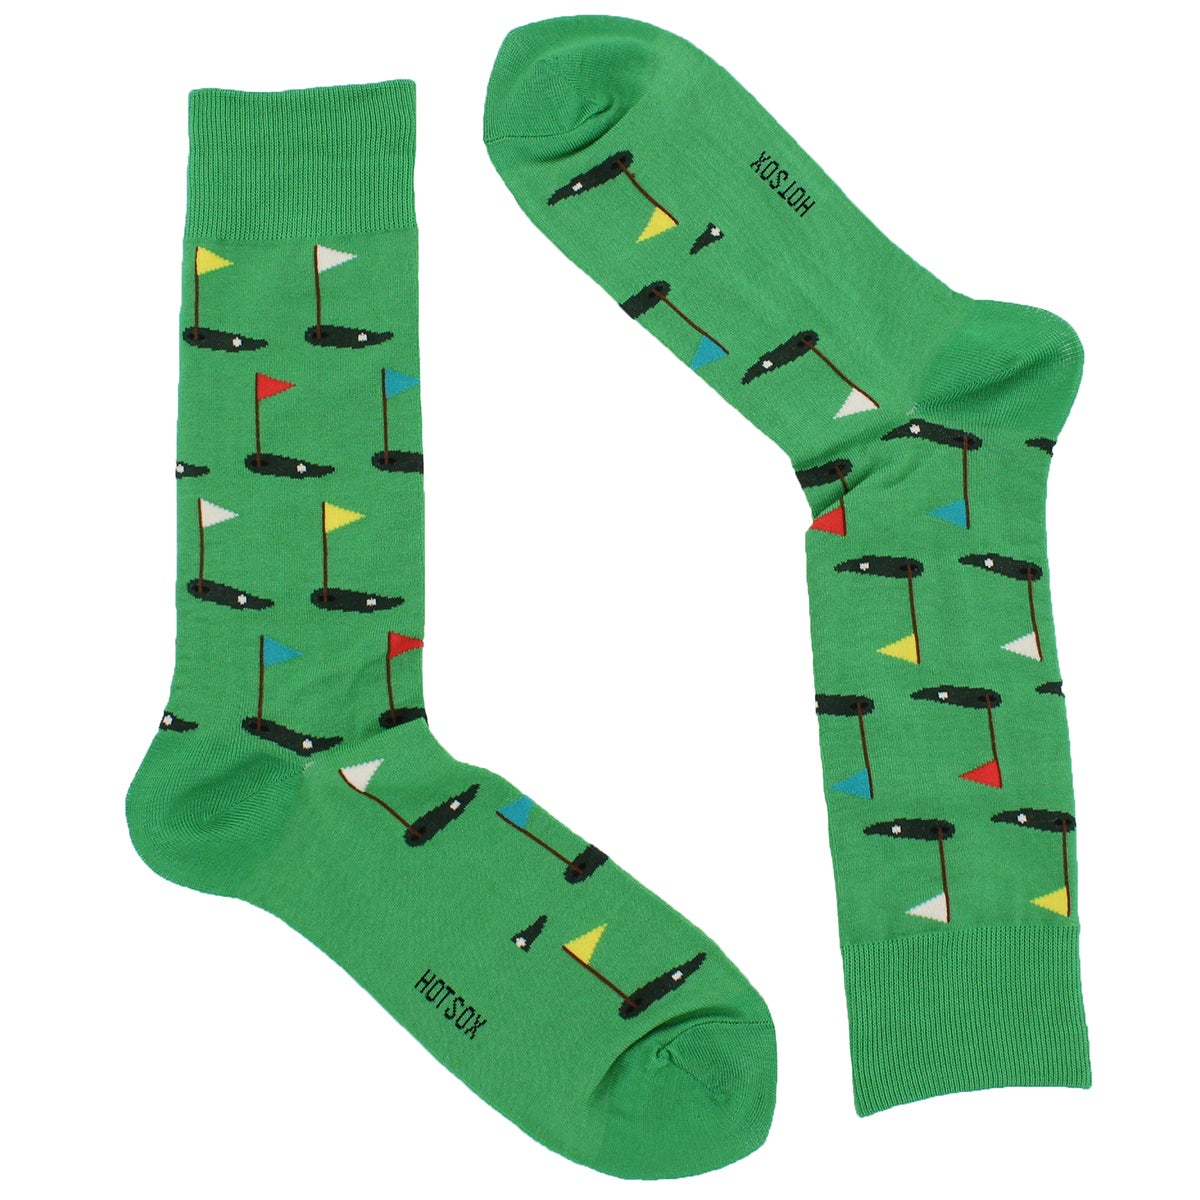 Mns Golf Crew green printed sock